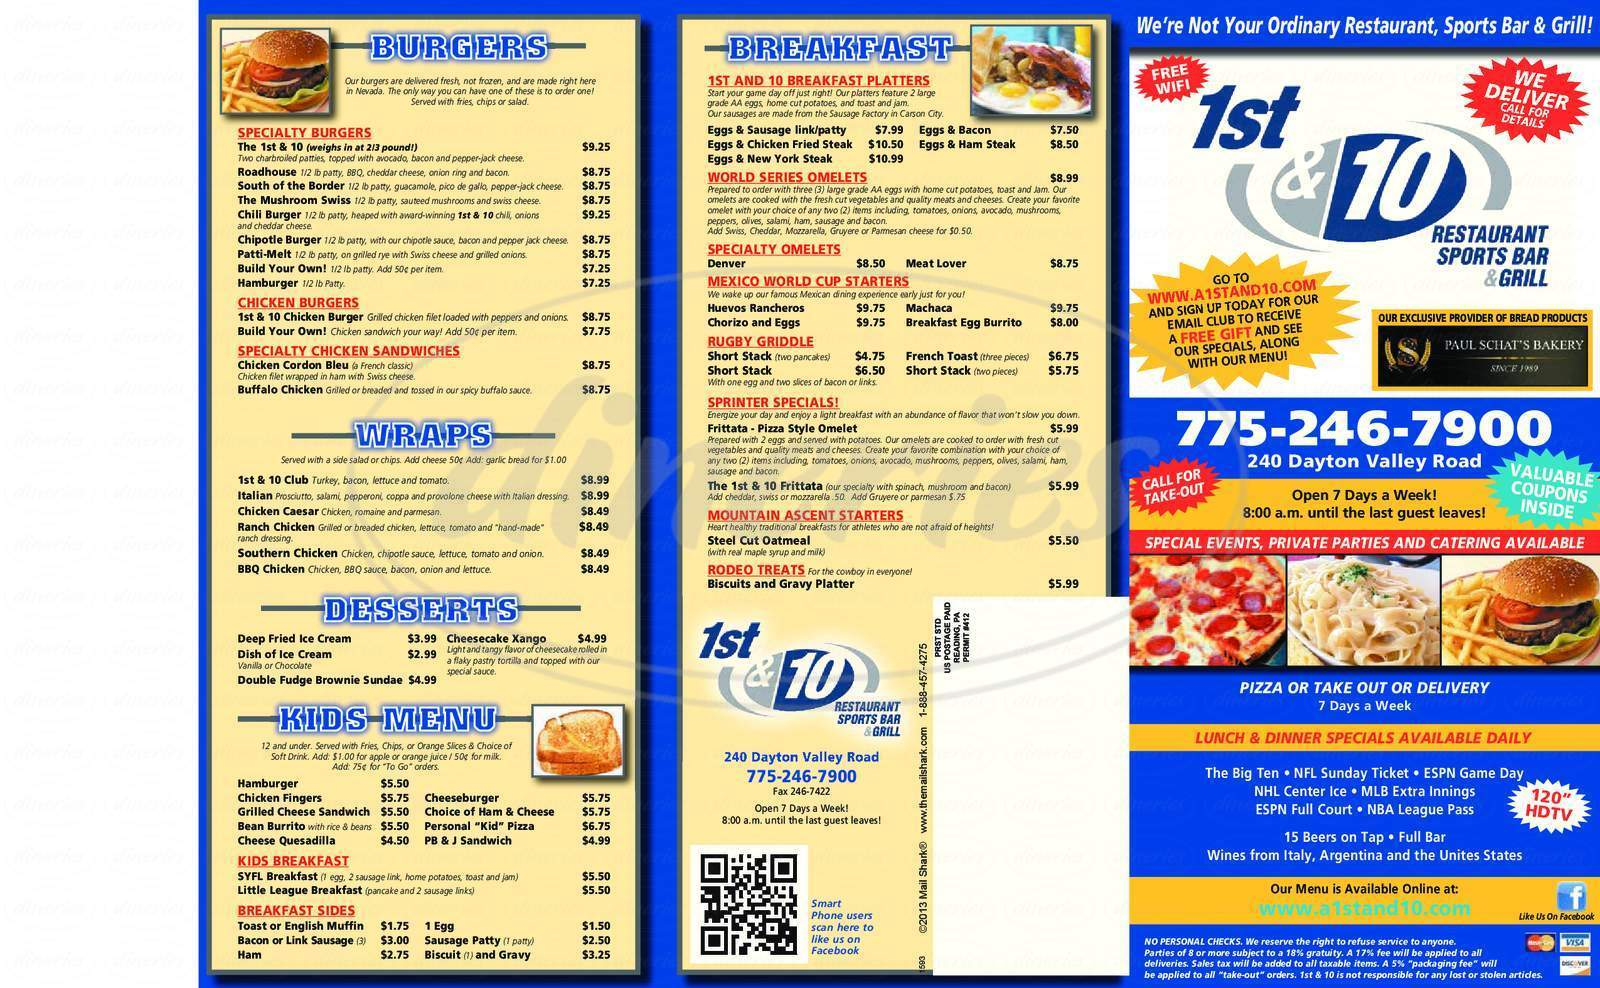 menu for 1st & 10 Restaurant Sports Bar & Grill